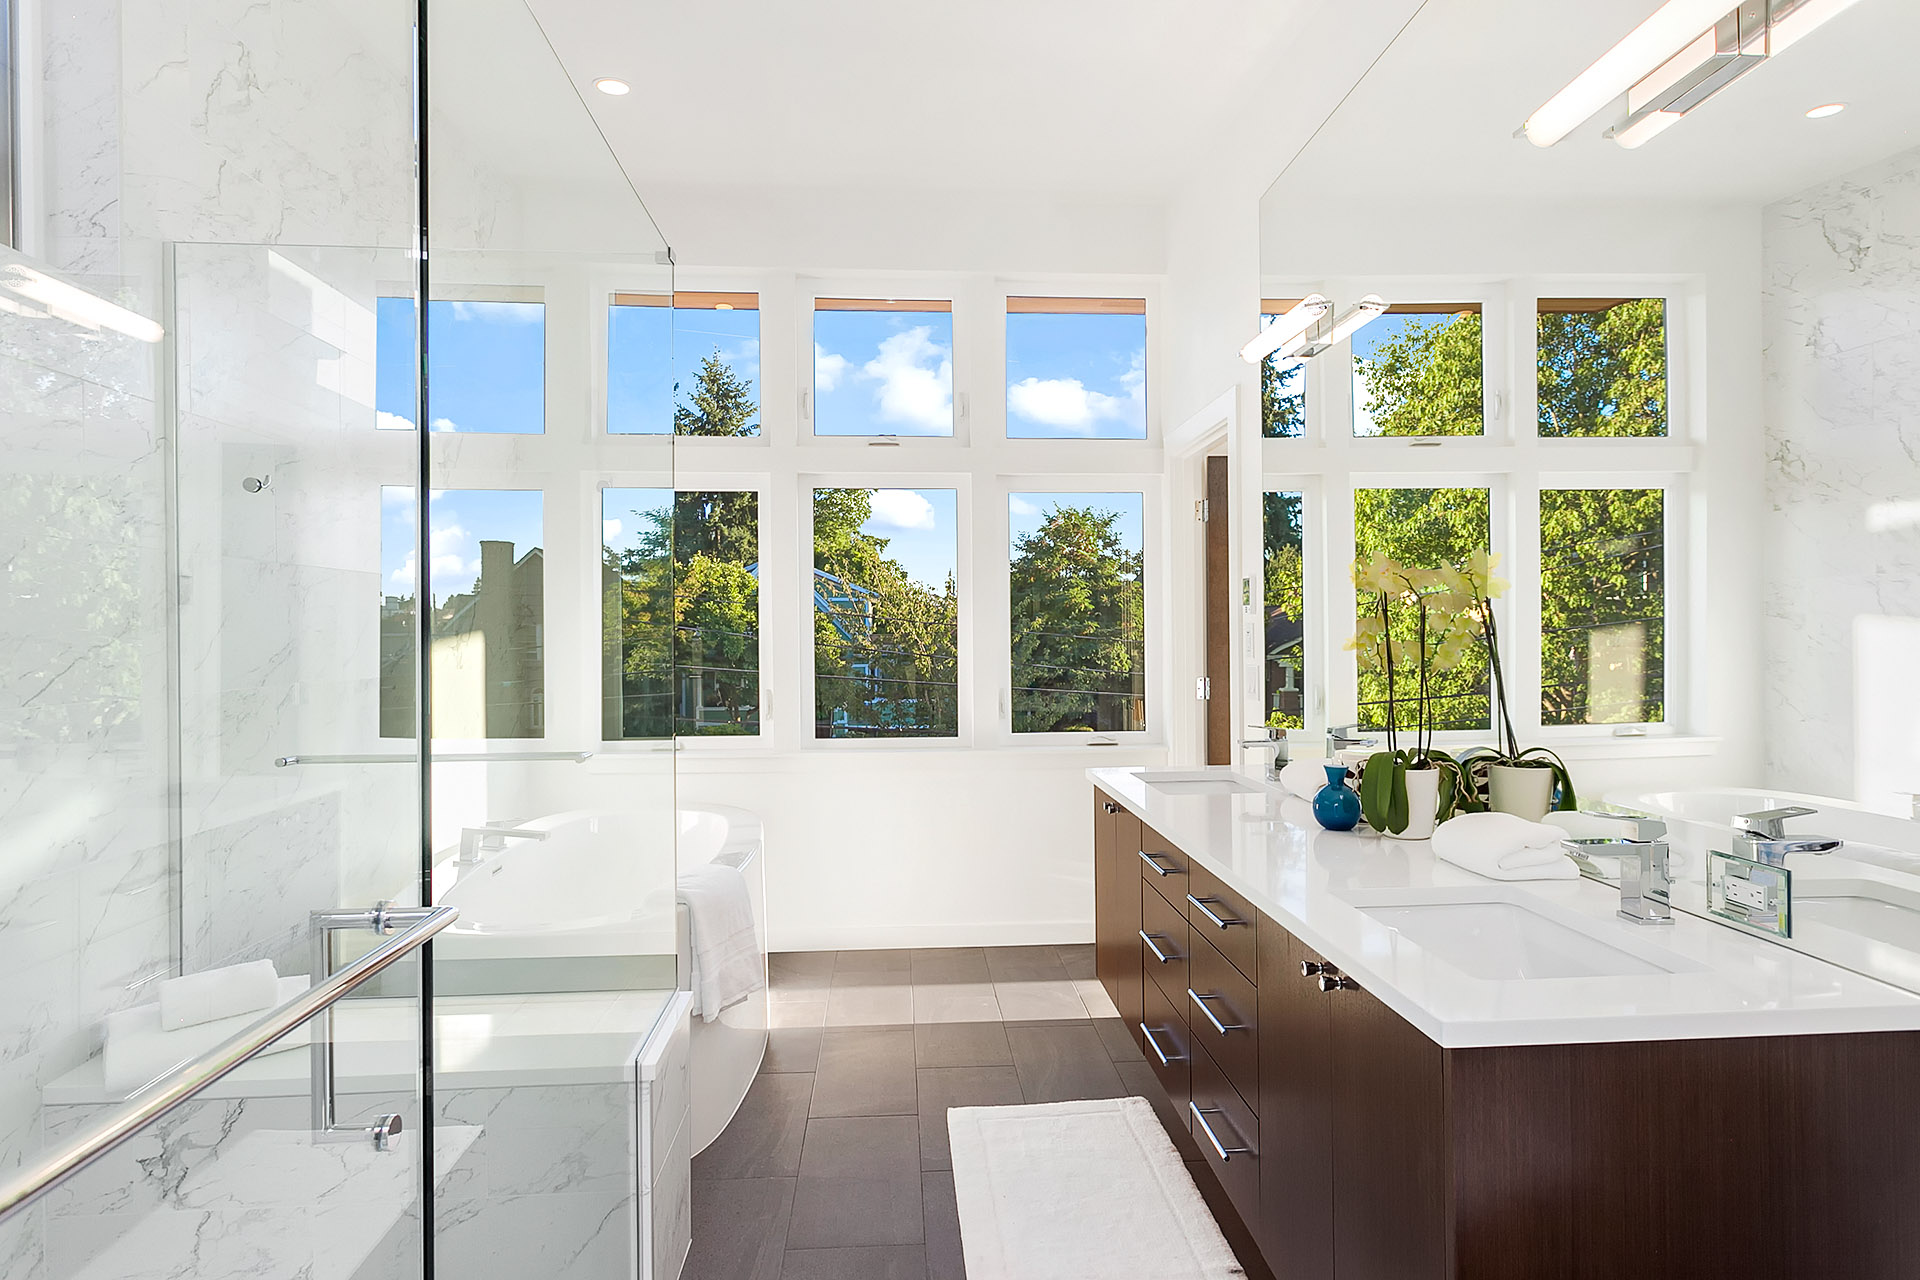 How to Photograph Bathrooms for Real Estate